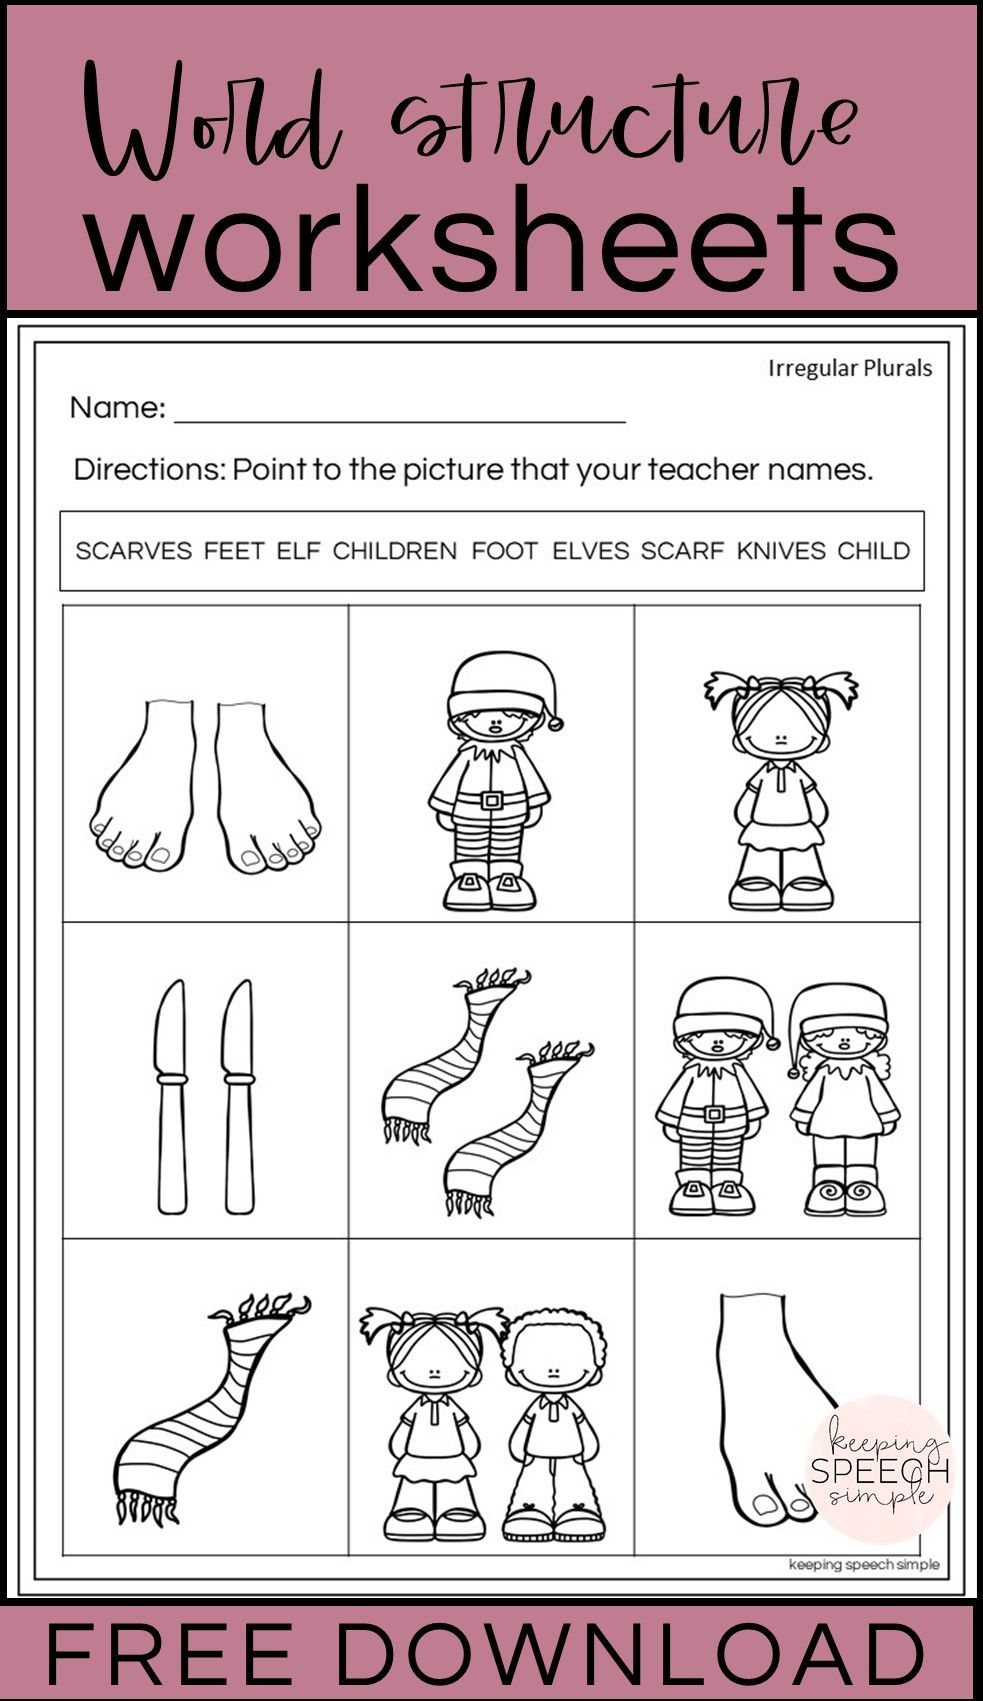 Word Structure Worksheets Free Sample In 2021 Word Structure Language Worksheets Language [ 1701 x 983 Pixel ]